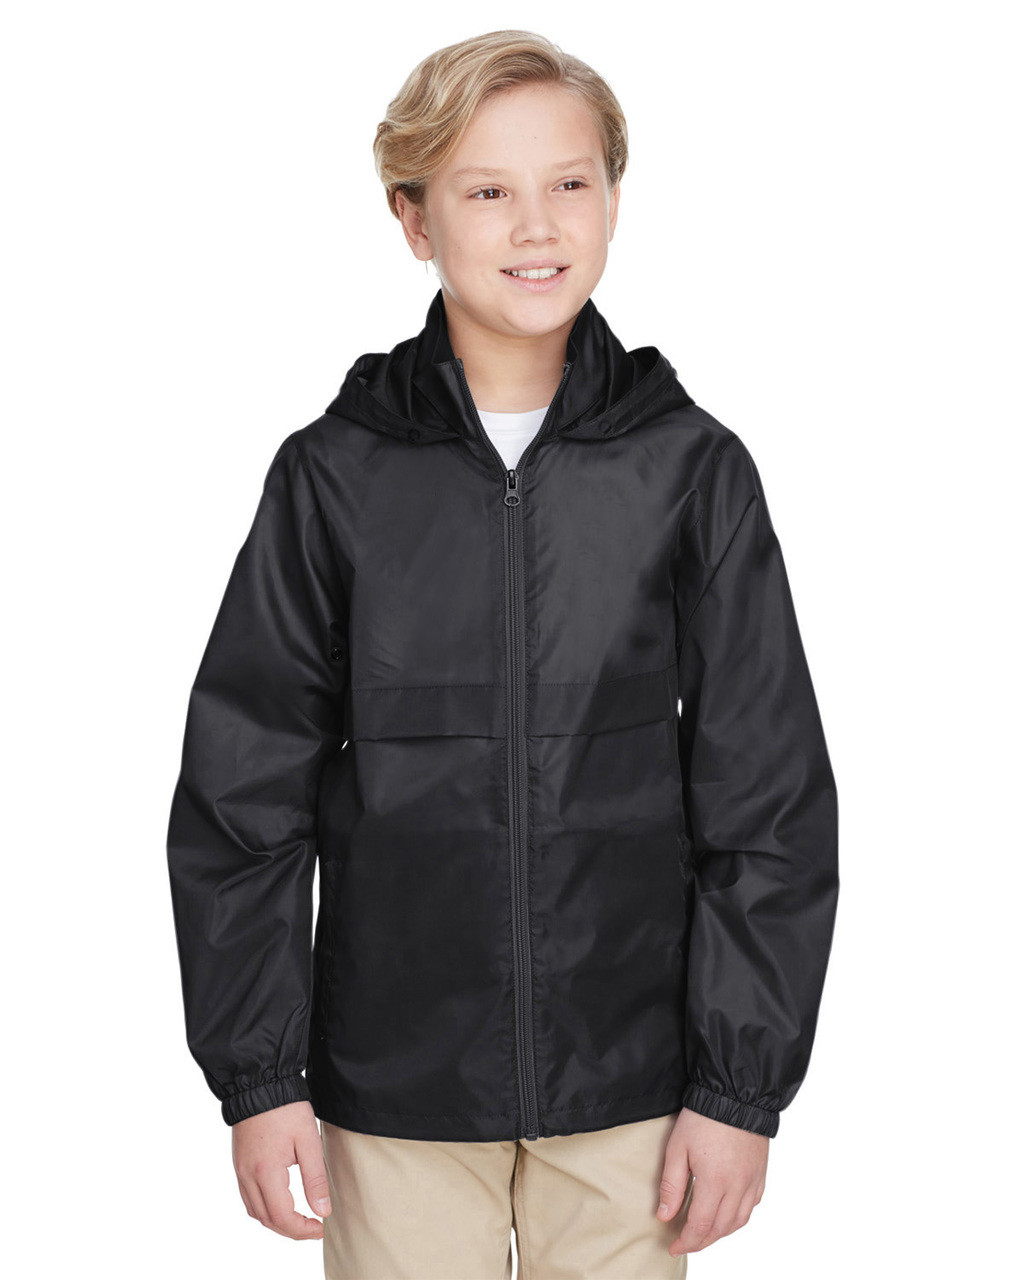 Black - TT73Y Team 365 Youth Zone Protect Lightweight Jacket  | BlankClothing.ca